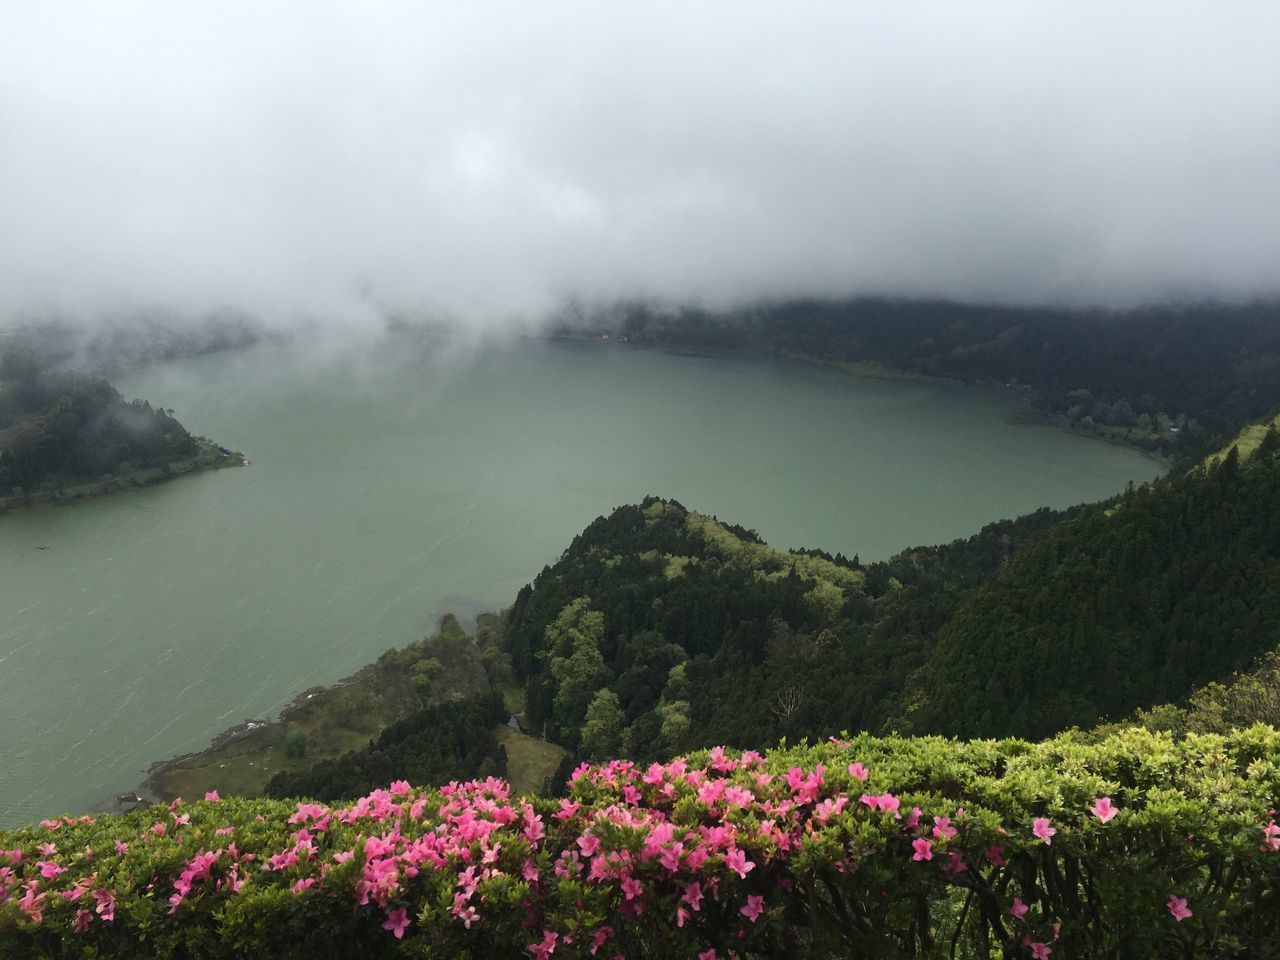 Flower Nature Beauty In Nature Lake Landscape Outdoors Water Fog Tranquility Day Scenics No People Mountain Travel Destinations Plant Springtime Rural Scene Sky Freshness Flower Head Açores - Portugal